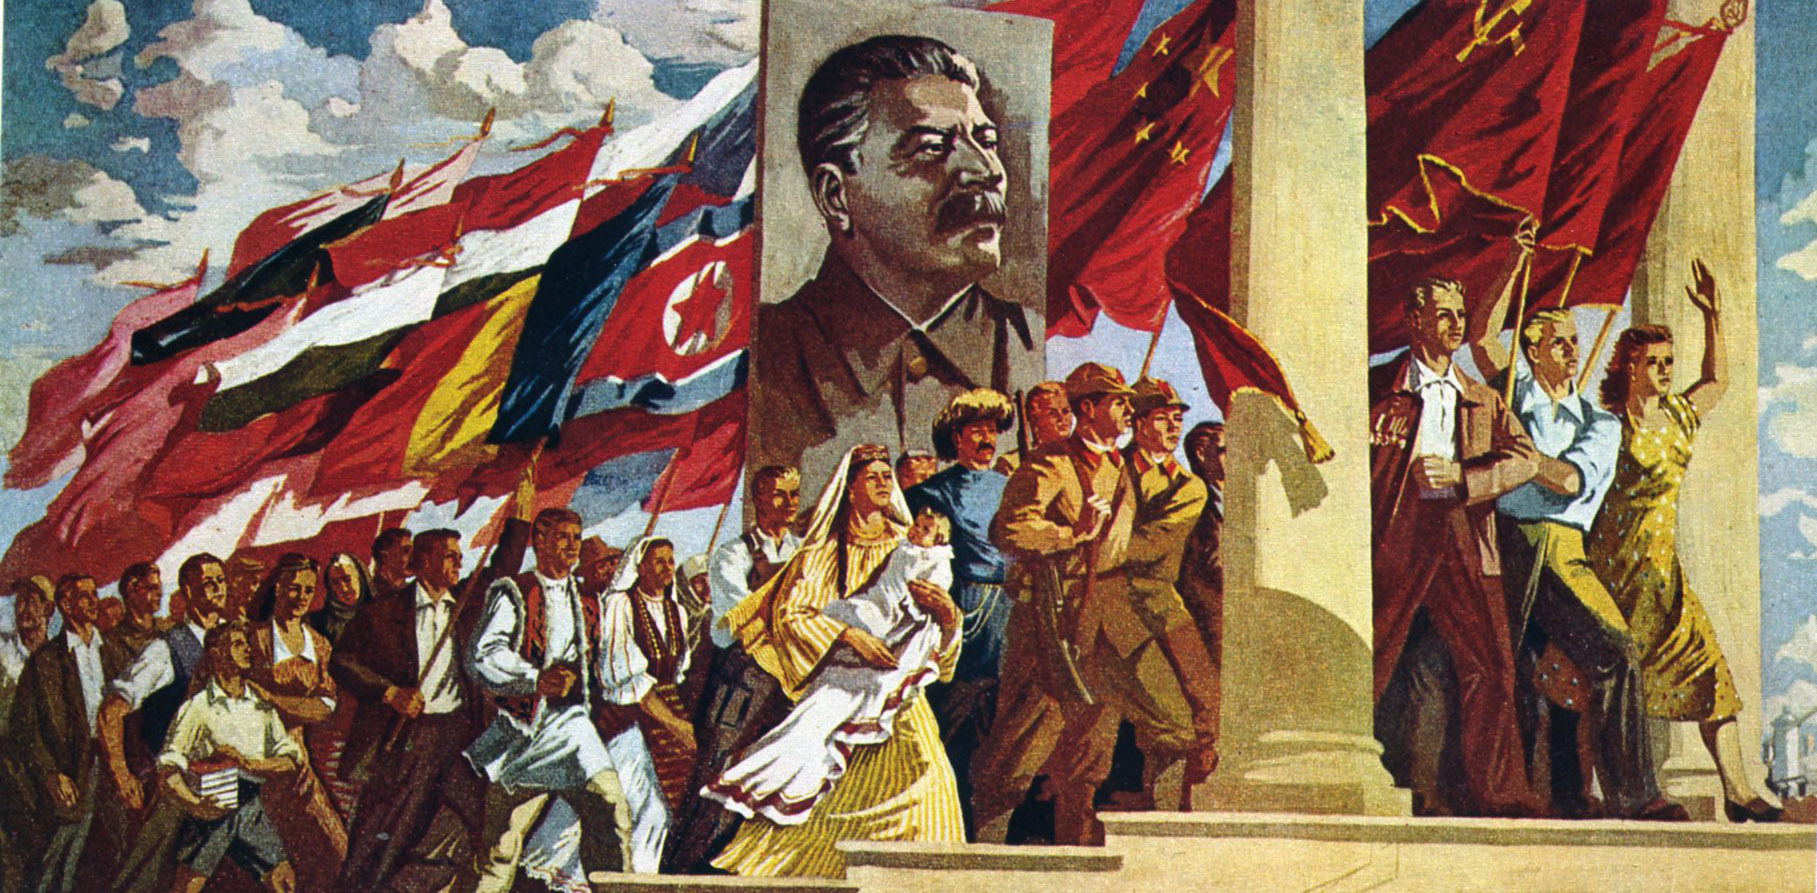 political changes gave birth to communism in russia Of communism in russia unless we accept the claim that lenin's coup d'etat gave birth to an traditions of all the russian revolutions of the past, with the goal of conquering political freedom rise of communism in china introduction the main reason why the communists came to power in.